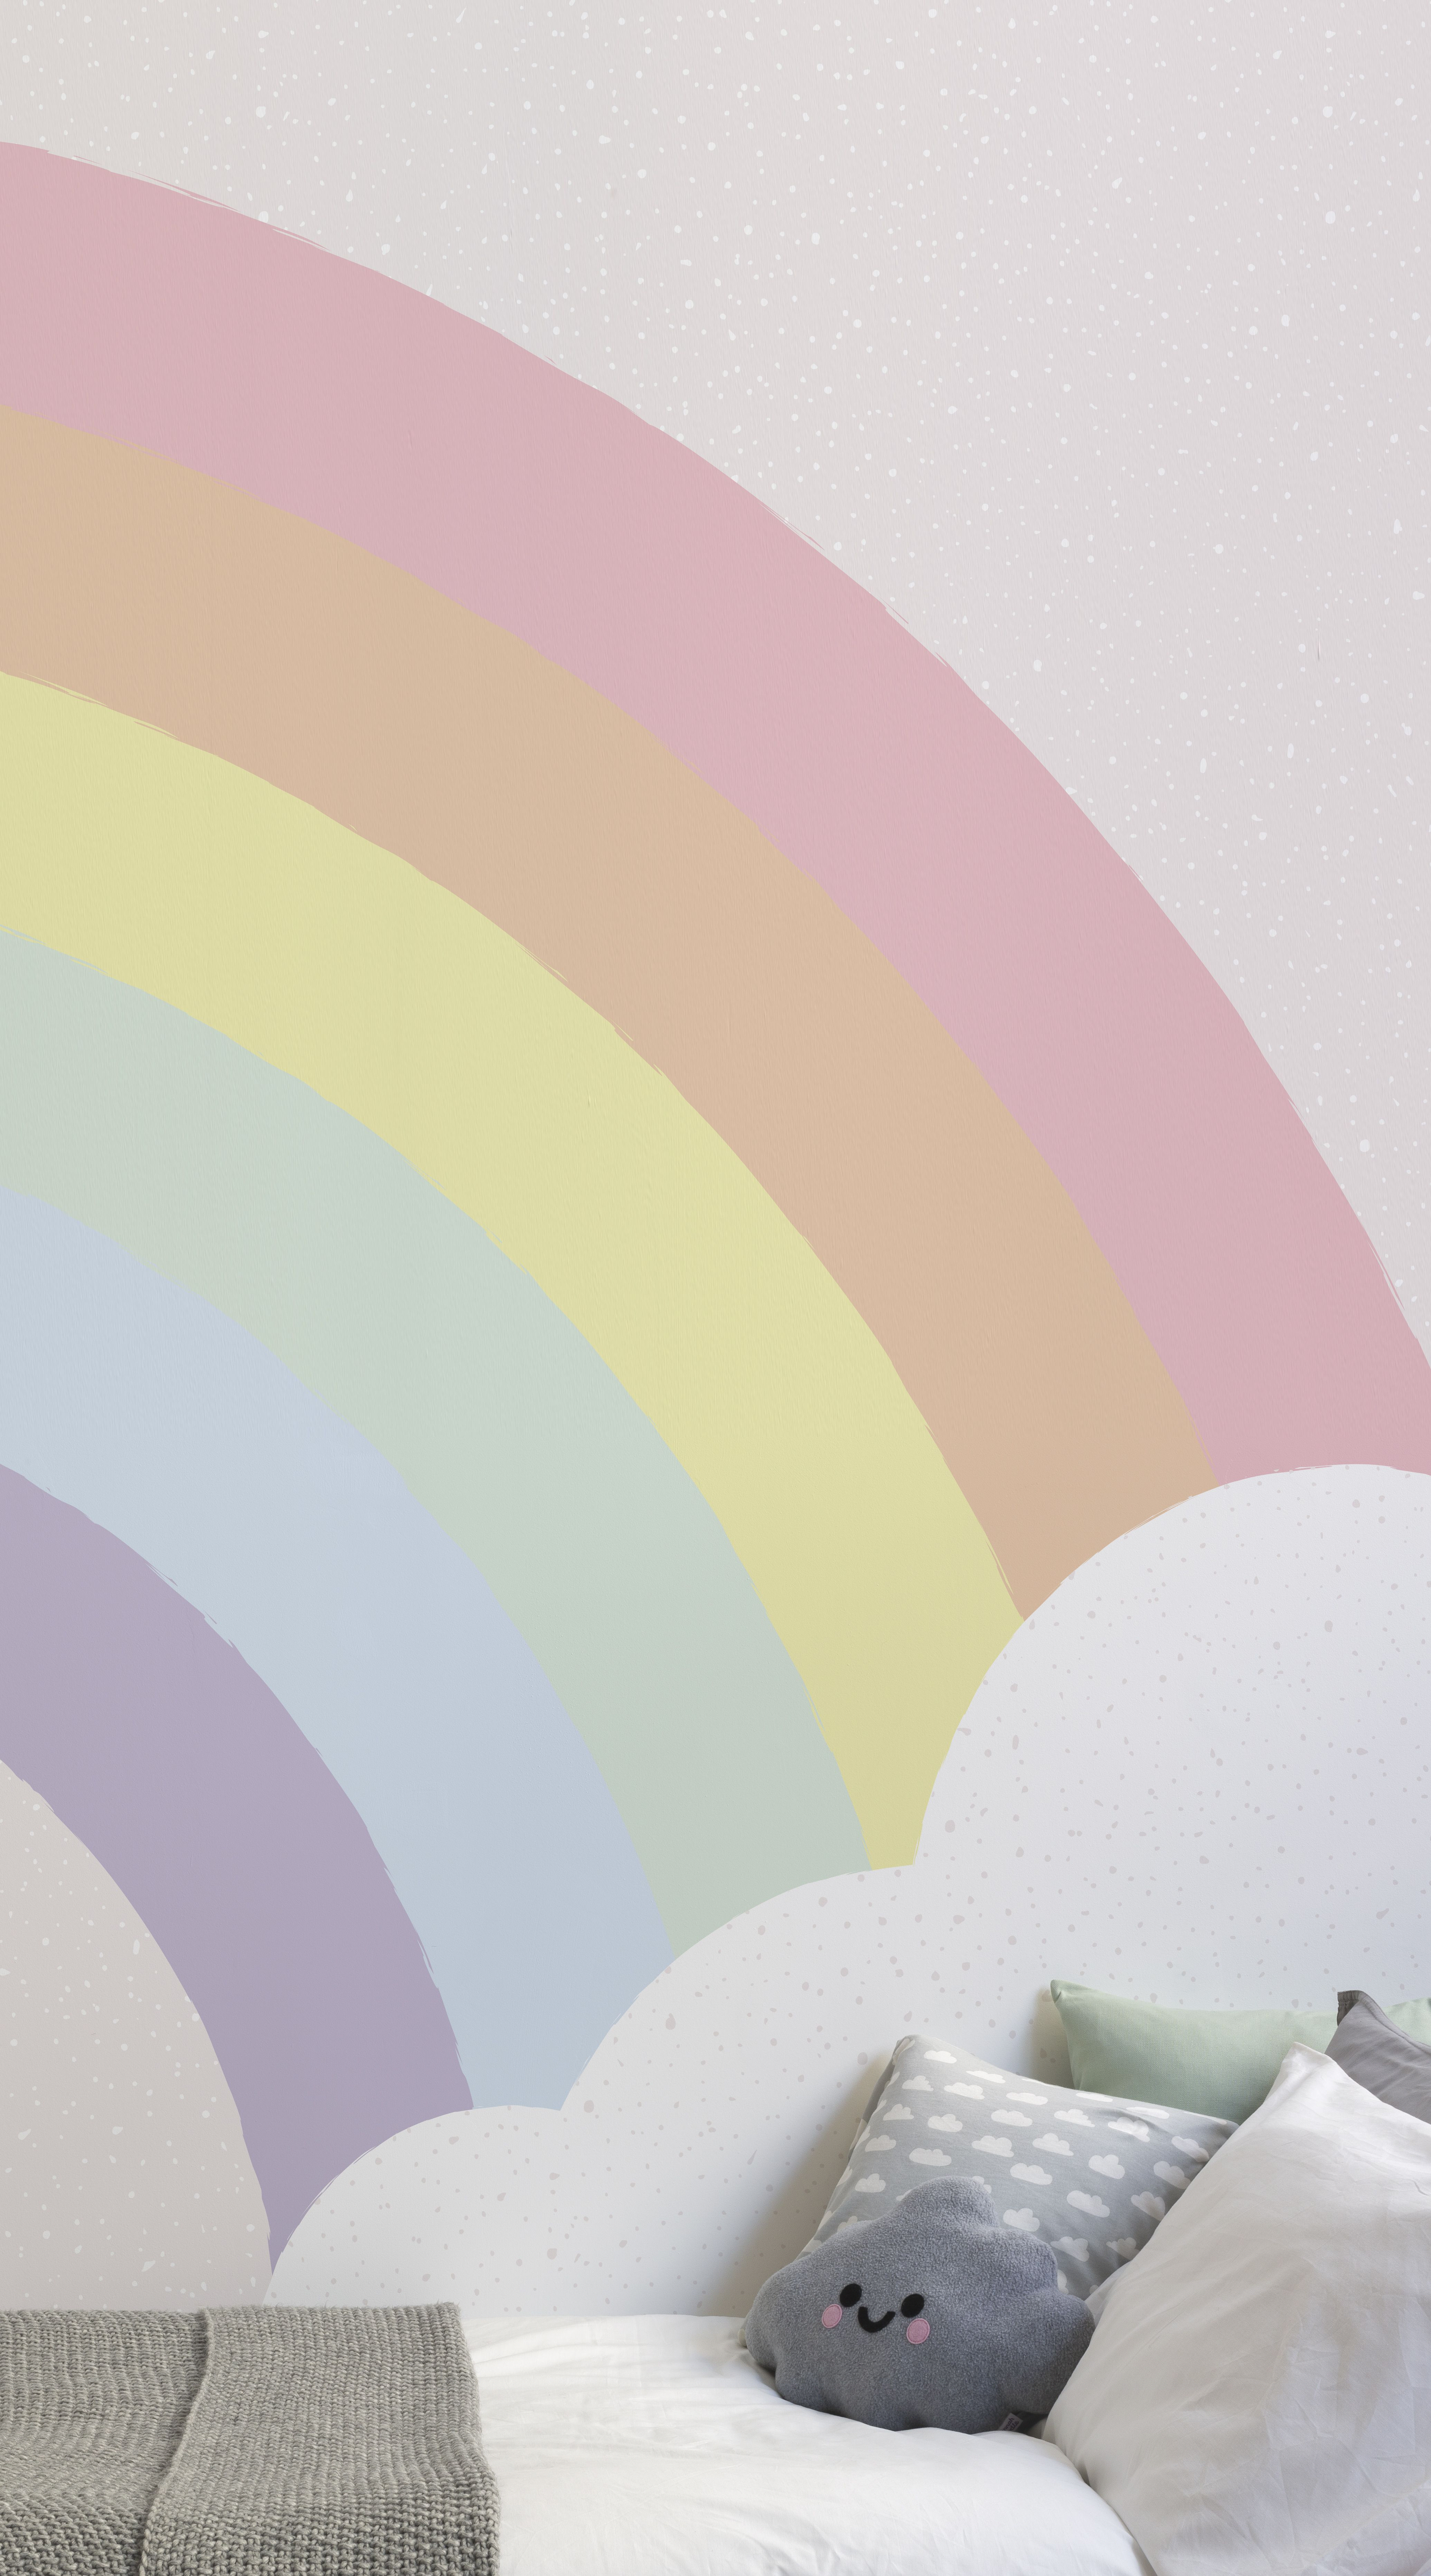 Let Your Childs Imagination Run Free With This Colourful Wallpaper Design The Kids Pastel Rainbow